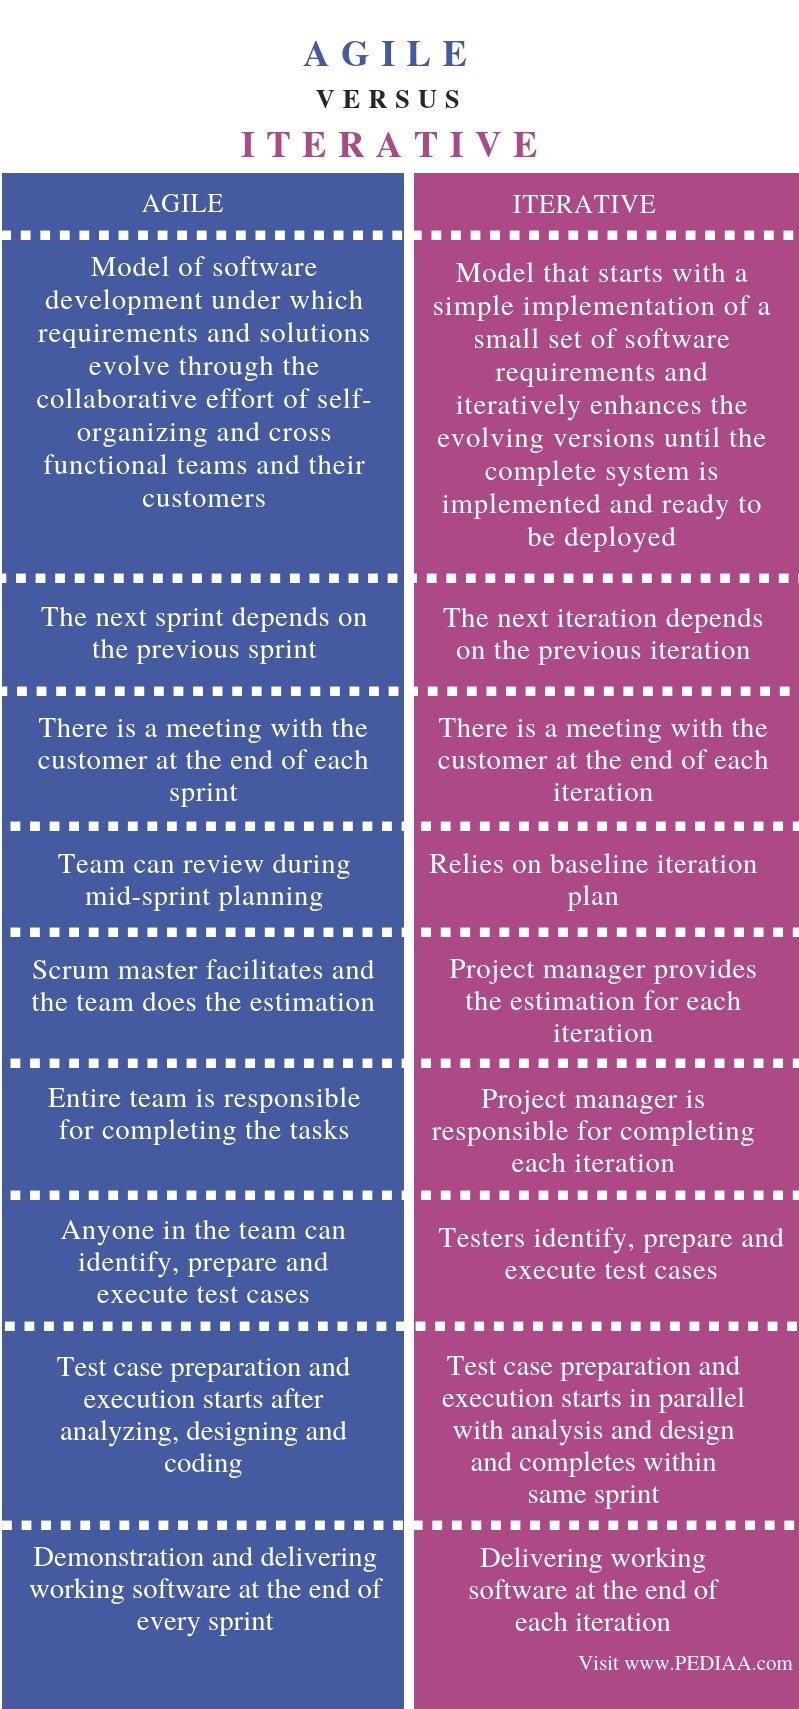 Difference Between Agile and Iterative - Comparison Summary